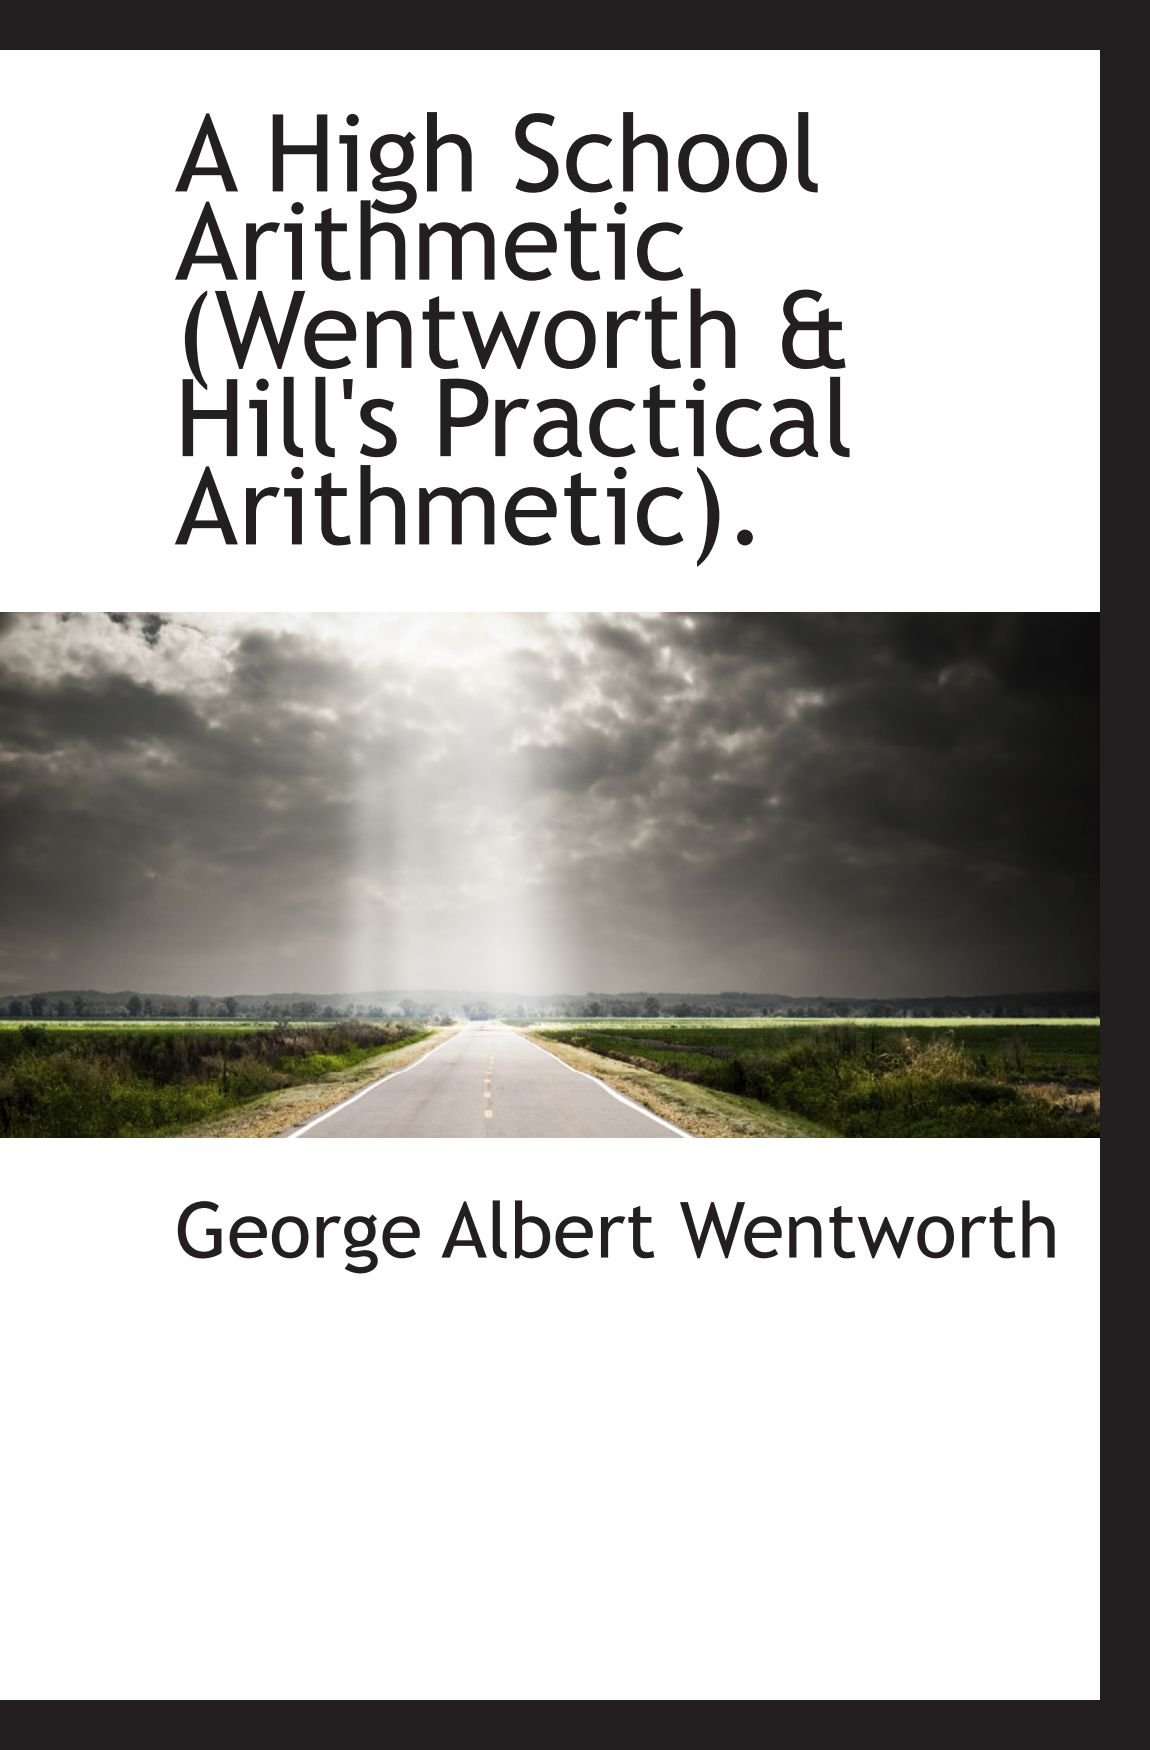 A High School Arithmetic (Wentworth & Hill's Practical Arithmetic). pdf